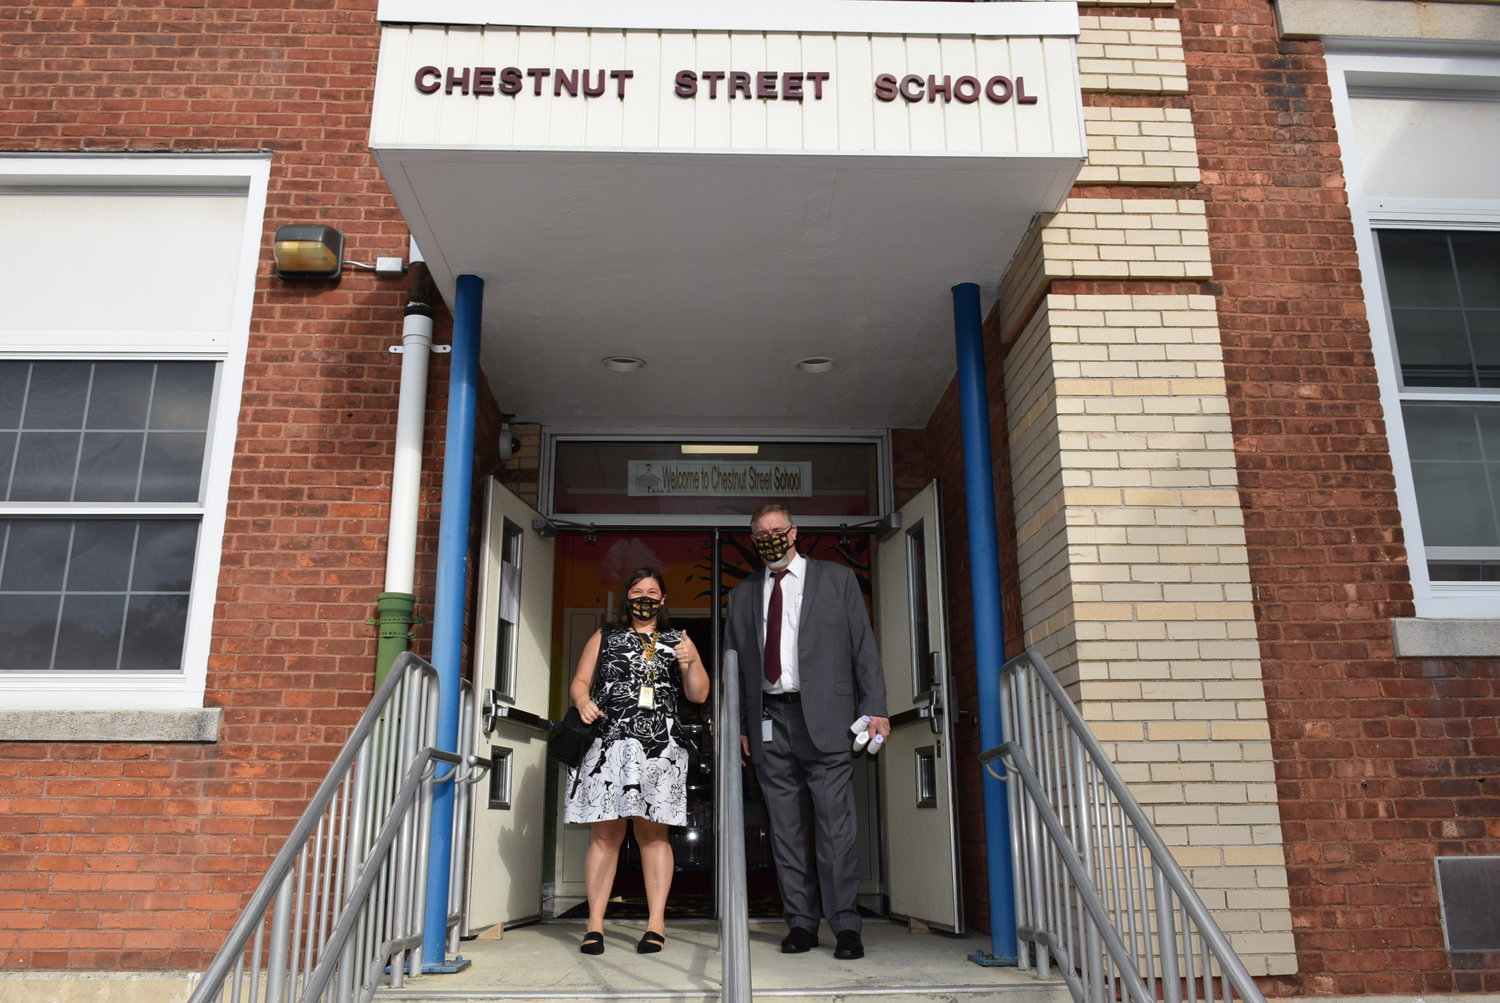 District Superintendent Dan Rehman and Chestnut Street School Principal Faith Tripp excitedly awaited the arrival of students.